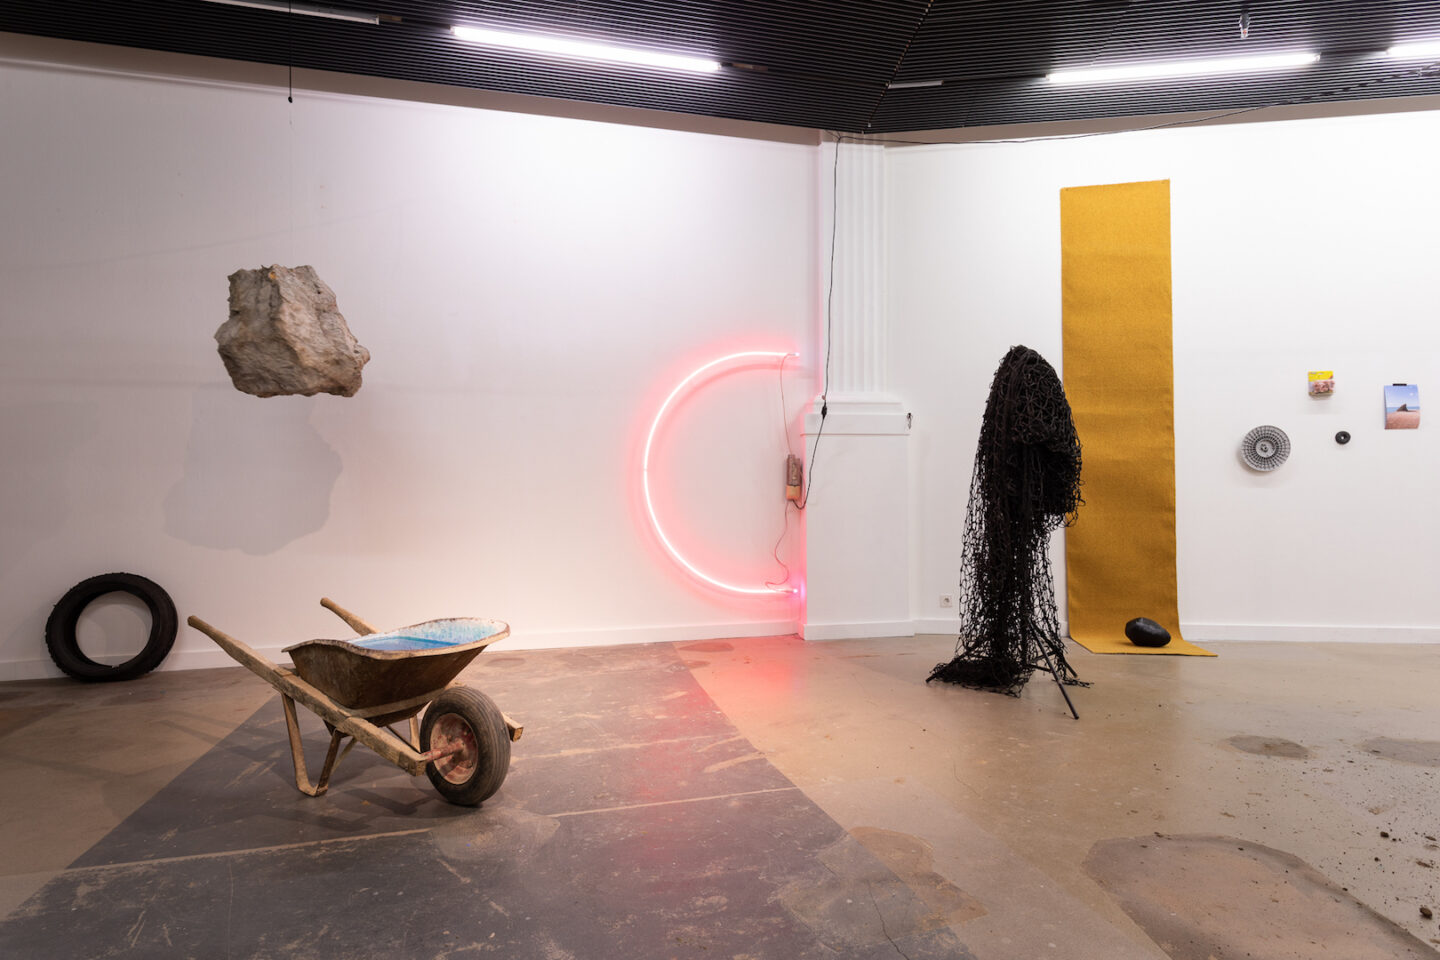 Exhibition View Philipp Hänger Soloshow «Dear Optimist» at Kunsthalle Luzern, Lucerne, 2020 / Photo: Killian Bannwart / Courtesy: the artist and Kunsthalle Luzern